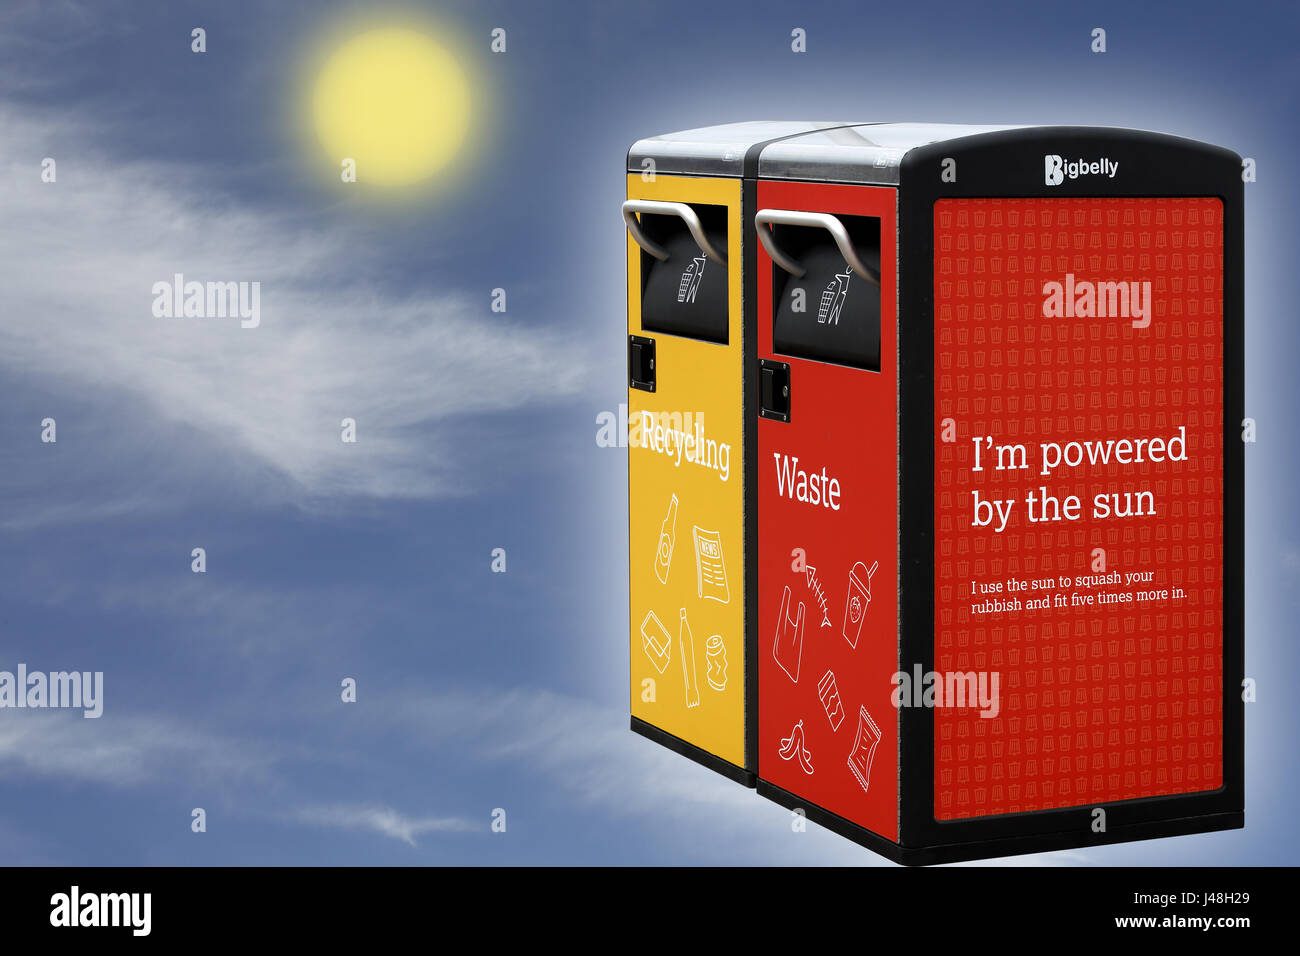 A yellow recycling bin and a red waste bin which use solar power to compact the waste. Merged image which allows - Stock Image